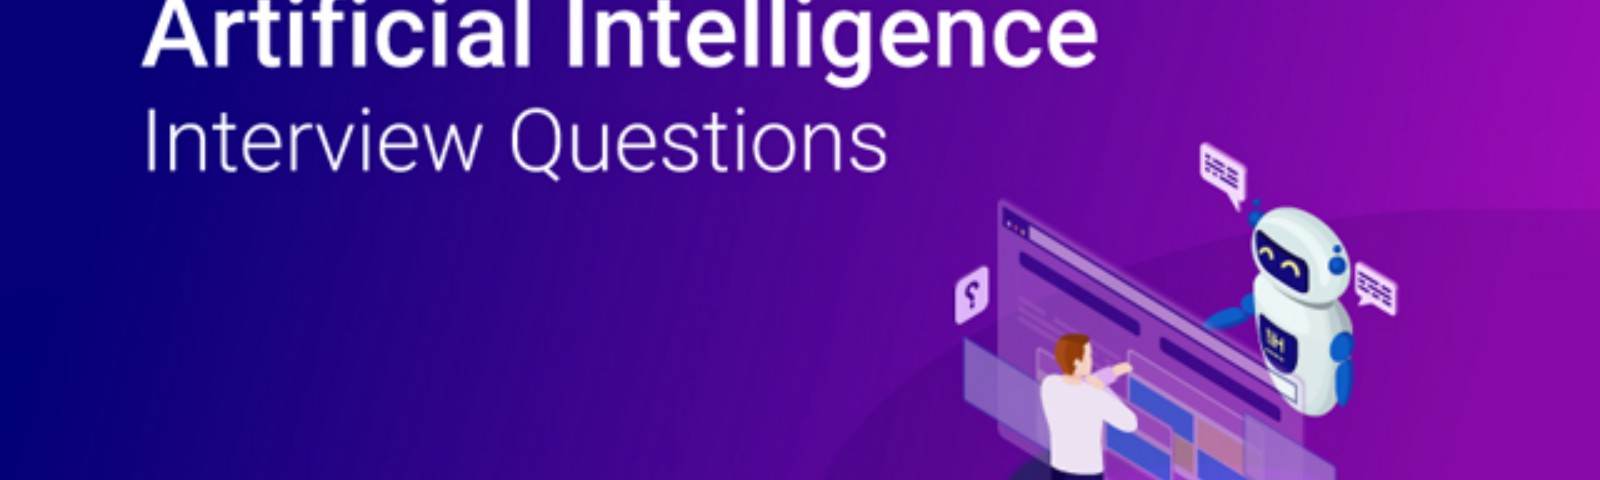 Top 45 Artificial Intelligence (AI) Interview Questions & Answers